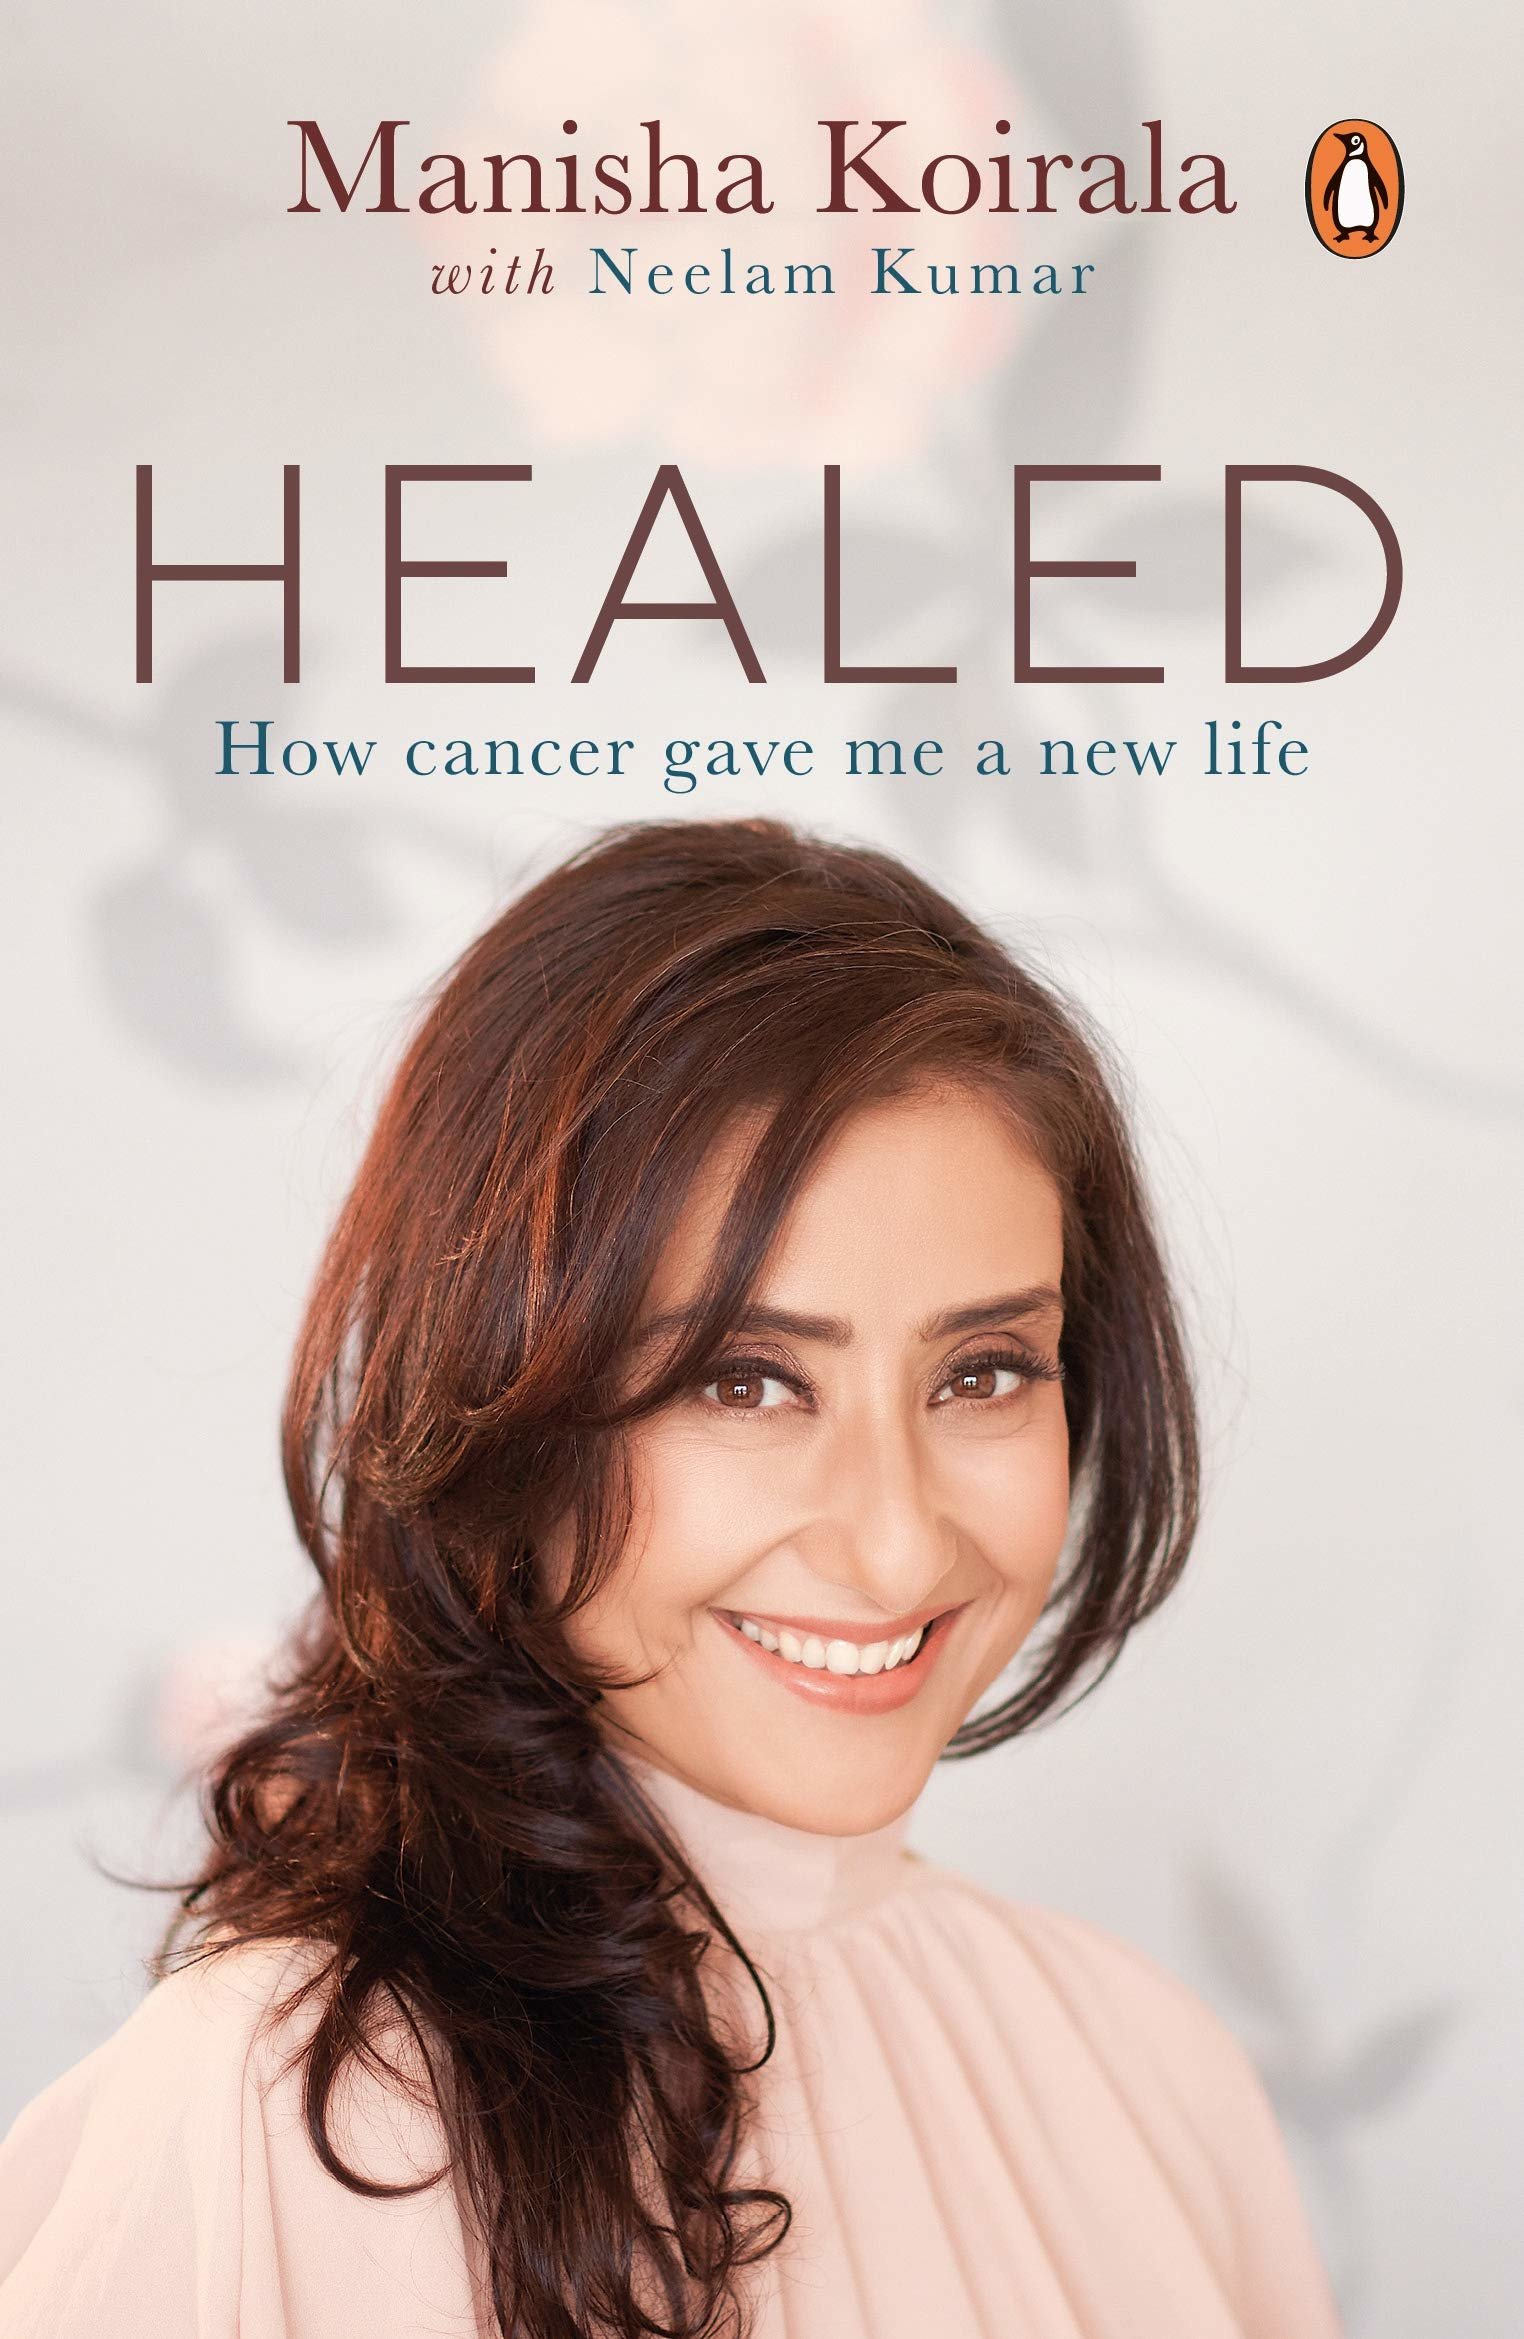 World Cancer Day: Here Are Top 5 Celebrity Memoirs About Their Struggle With Cancer